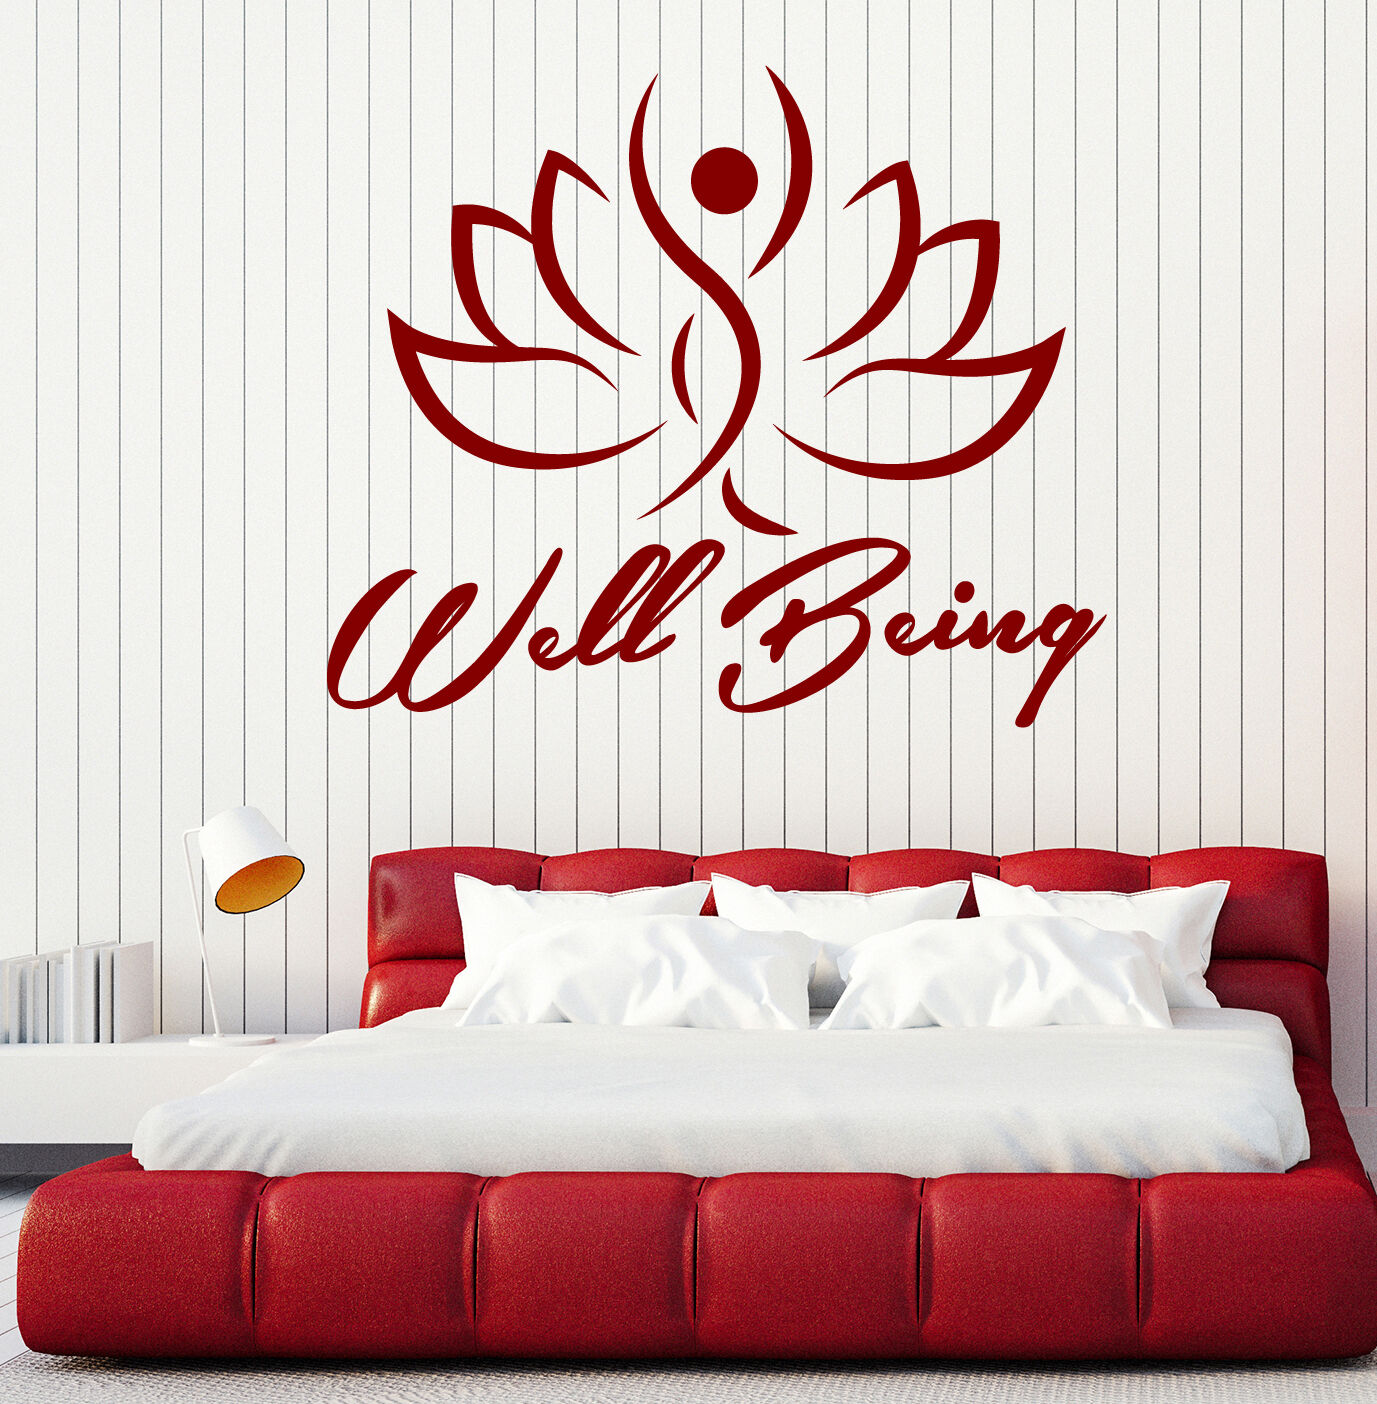 Wall Vinyl Decal Image Man Inside a Lotus Well Being Home Decor z4826